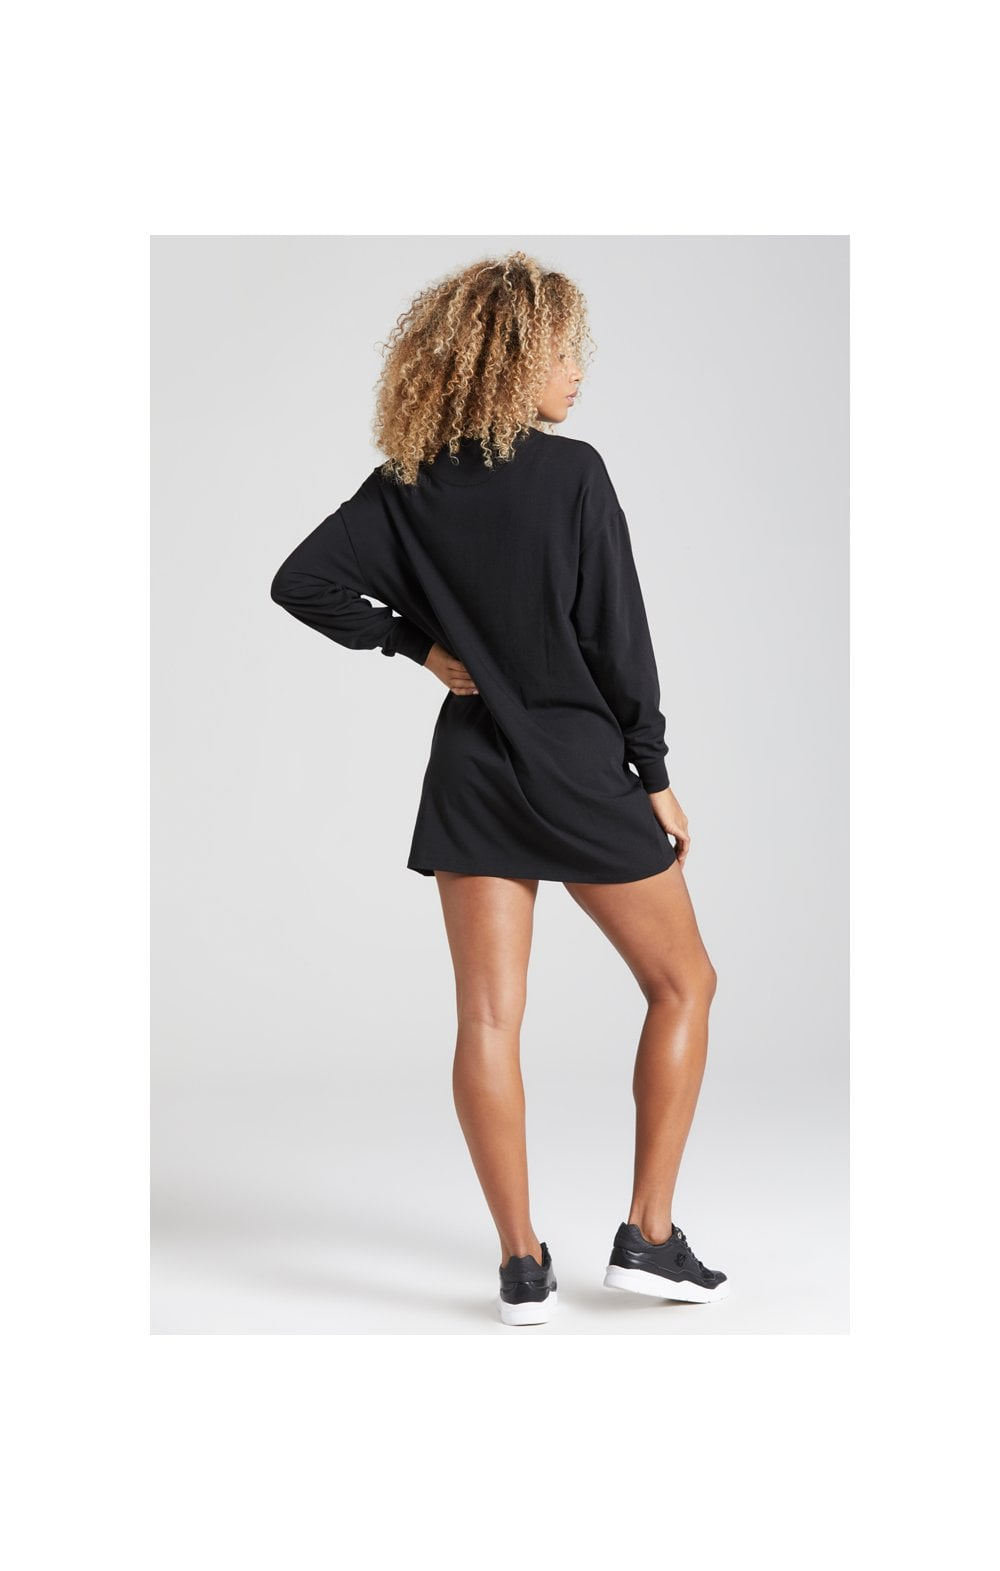 SikSilk Prestige Tshirt Dress - Black (6)